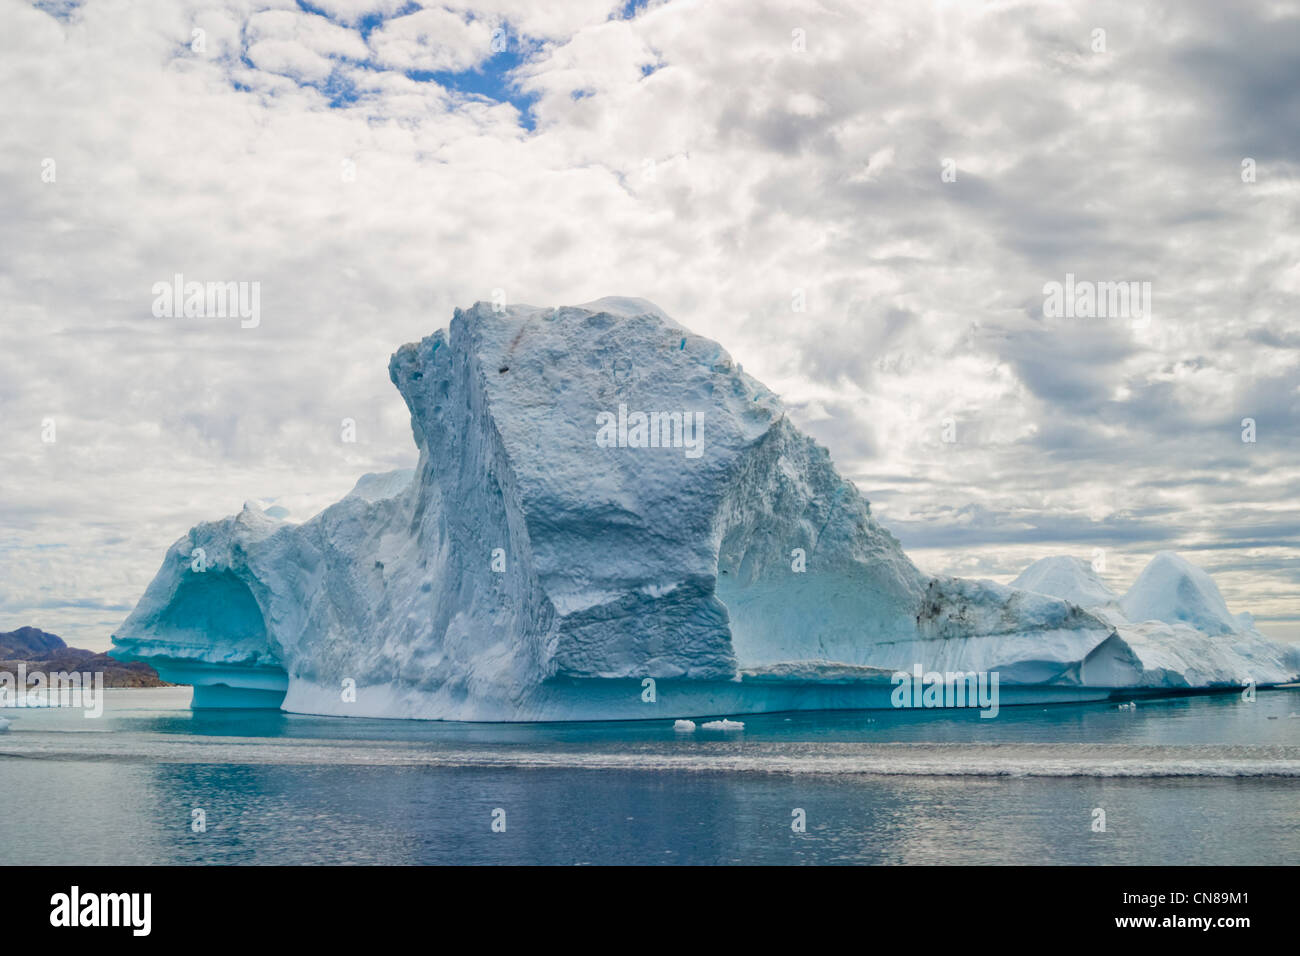 Côte de l'Arctique, Groenland iceberg Photo Stock